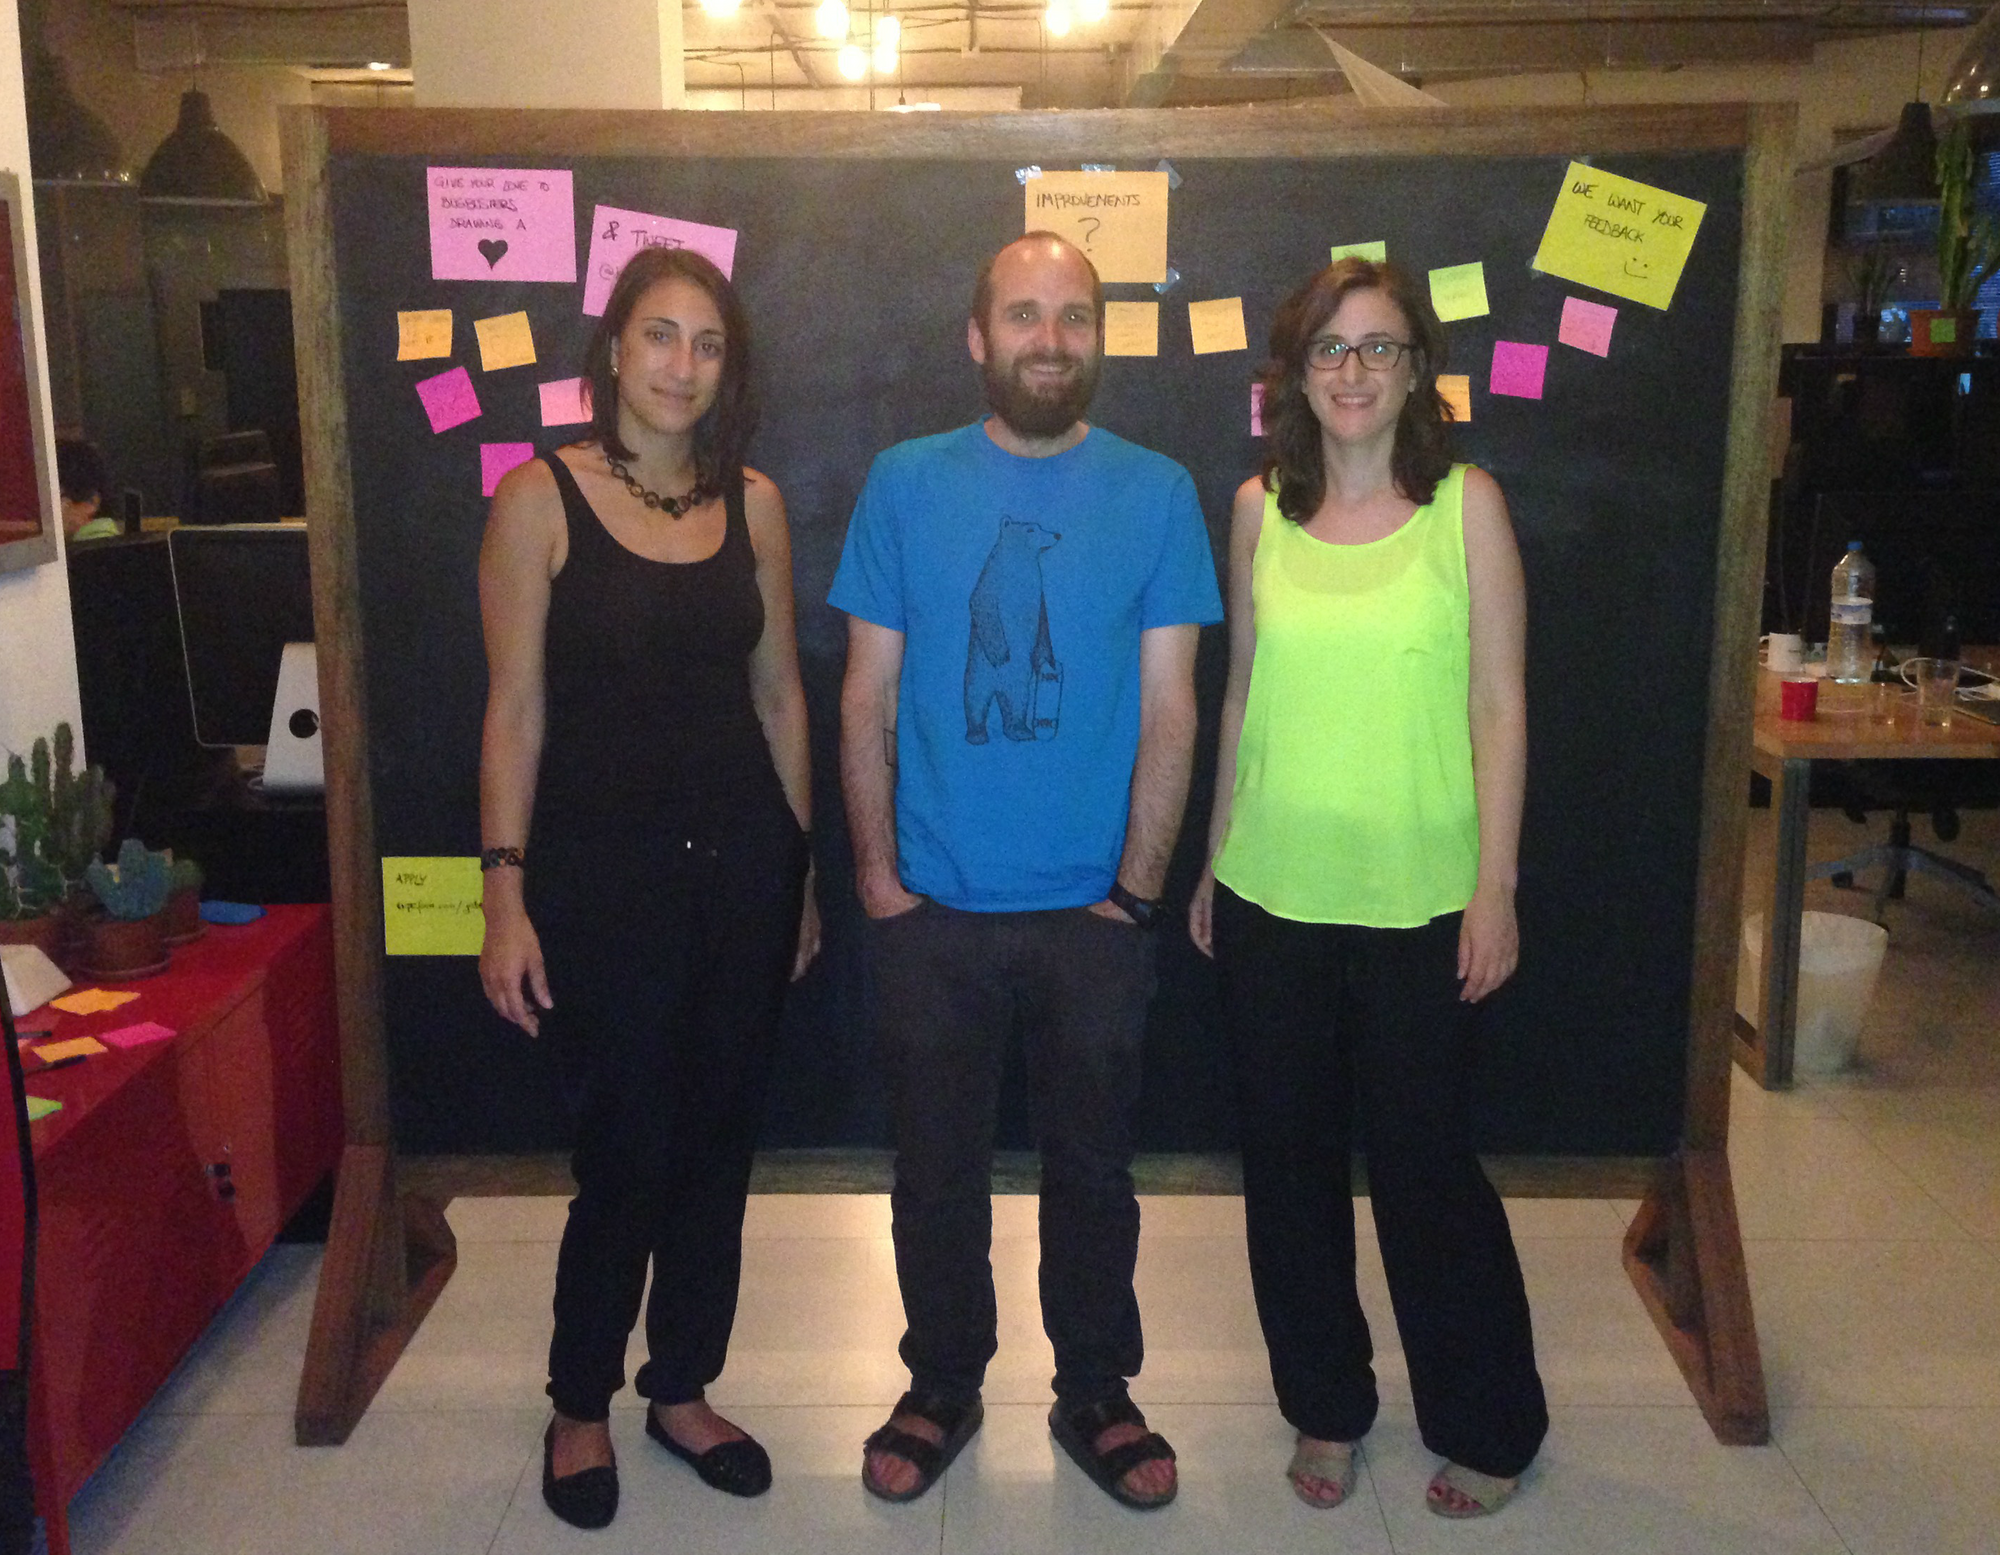 Matt with the Typeform team, Aida Manna (Left) and Gloria Hornero (Right)